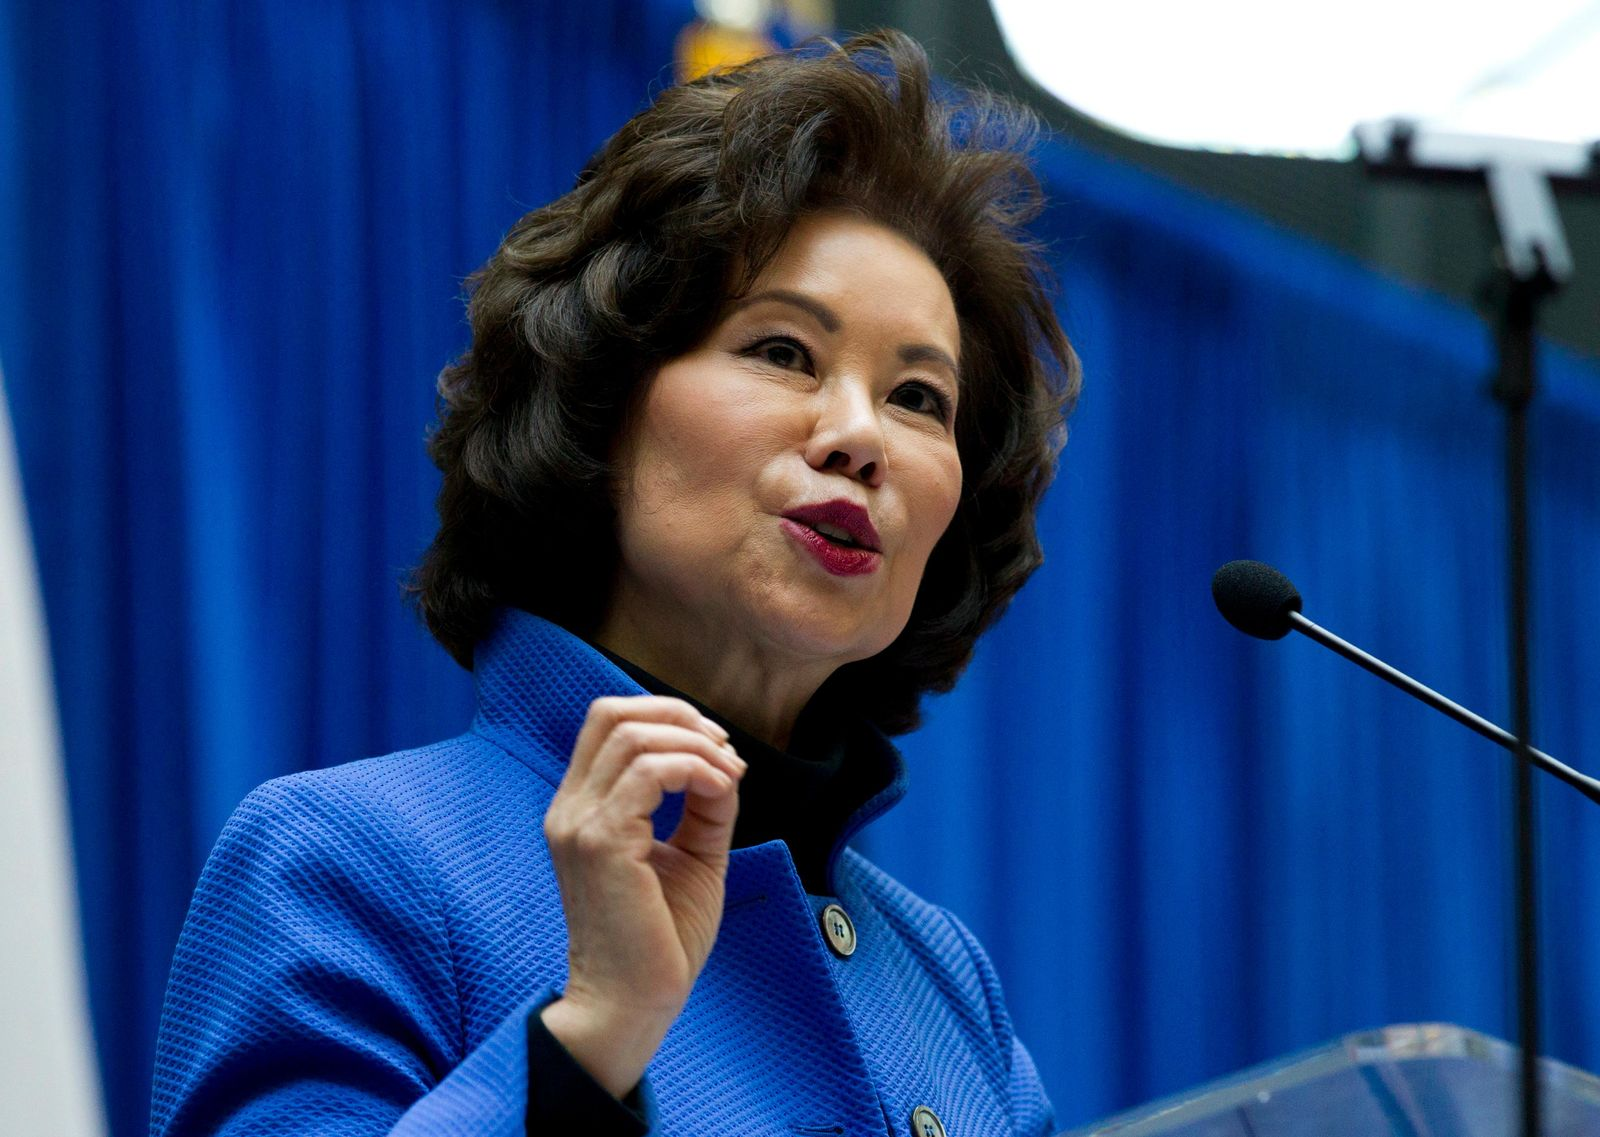 FILE - In this Dec. 11, 2018 file photo, Transportation Secretary Elaine Chao speaks during a major infrastructure investment announcement at transportation headquarters in Washington.. (AP Photo/Jose Luis Magana, File)